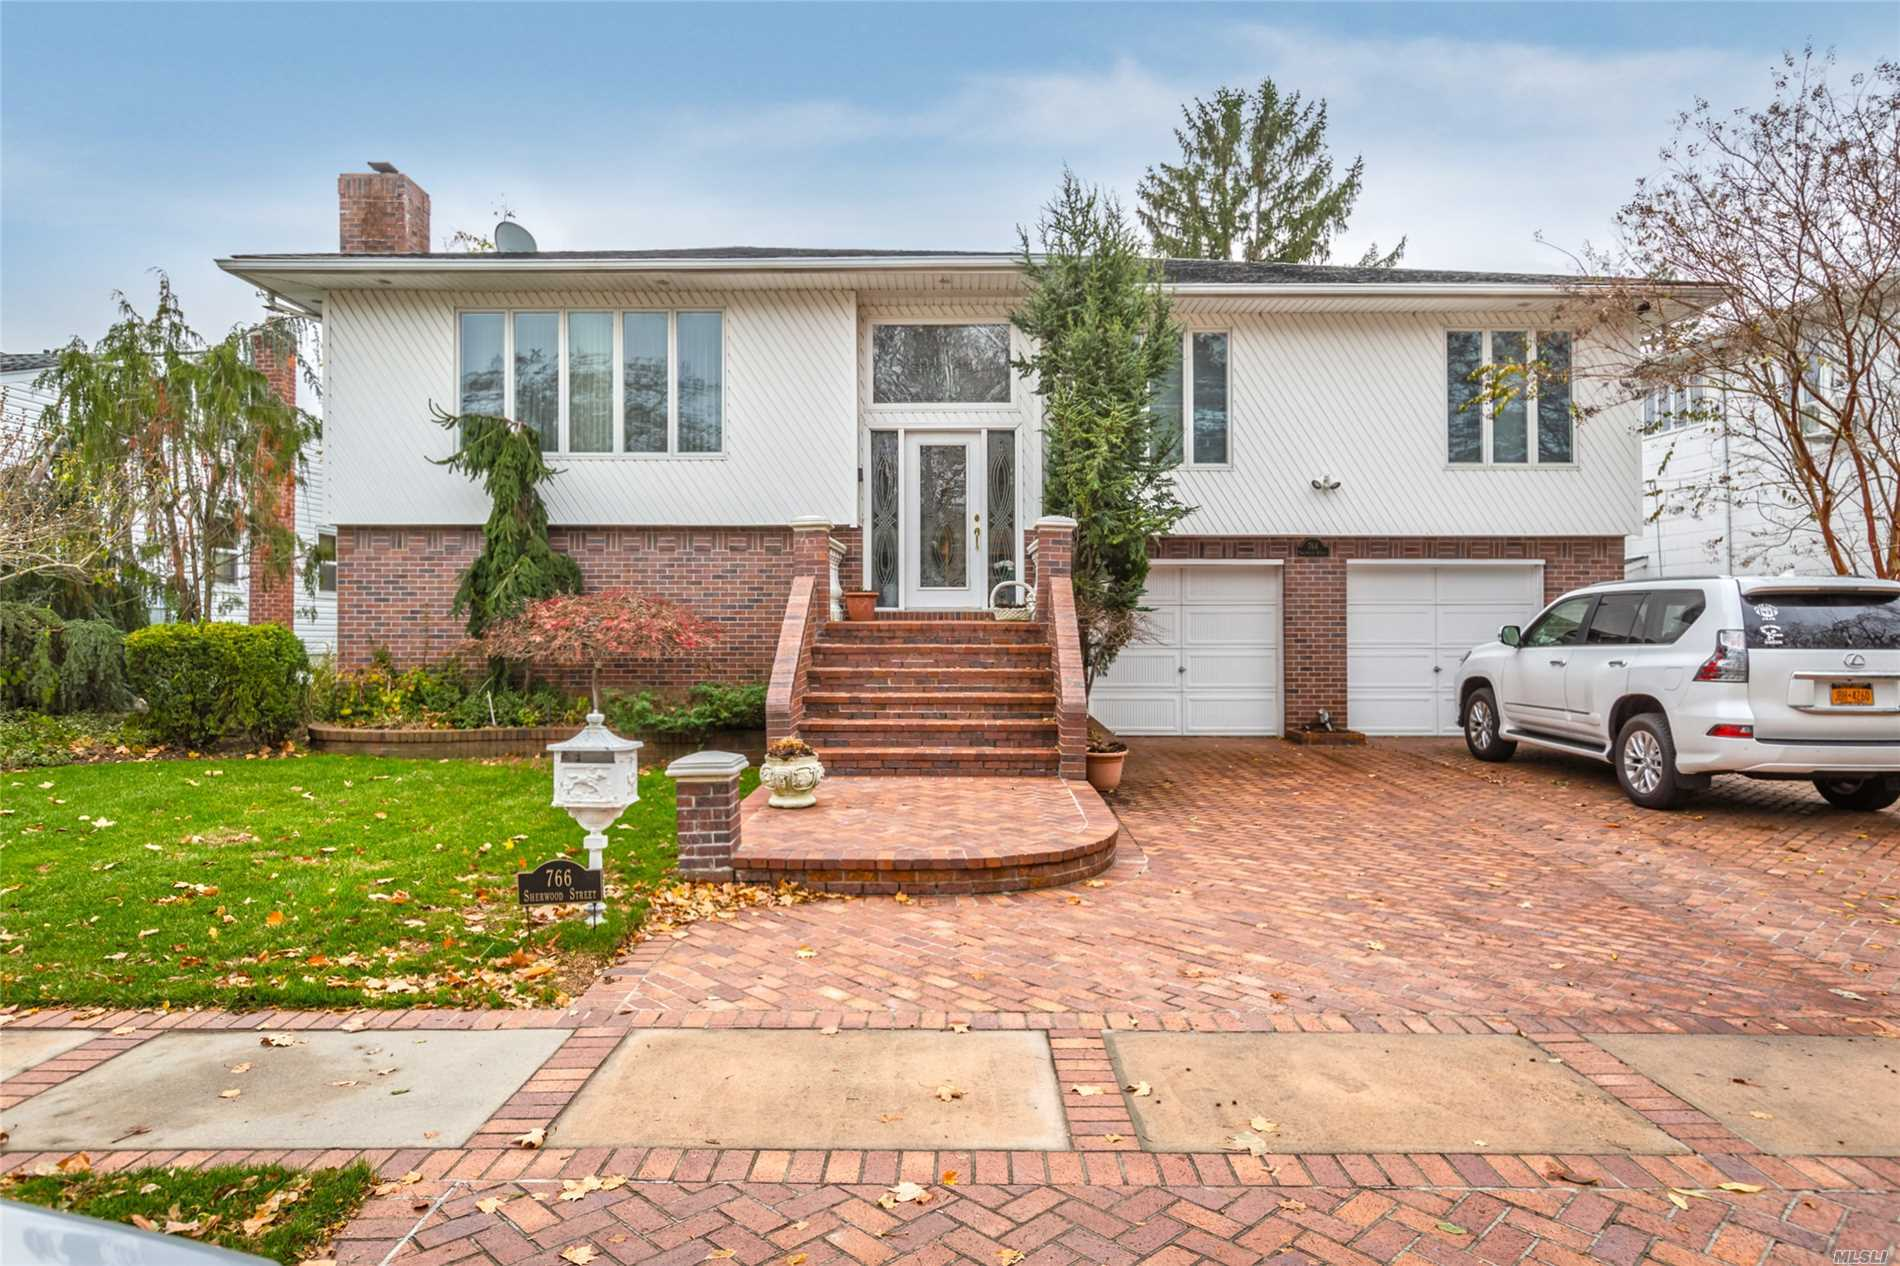 Photo of home for sale at 766 Sherwood St, North Woodmere NY